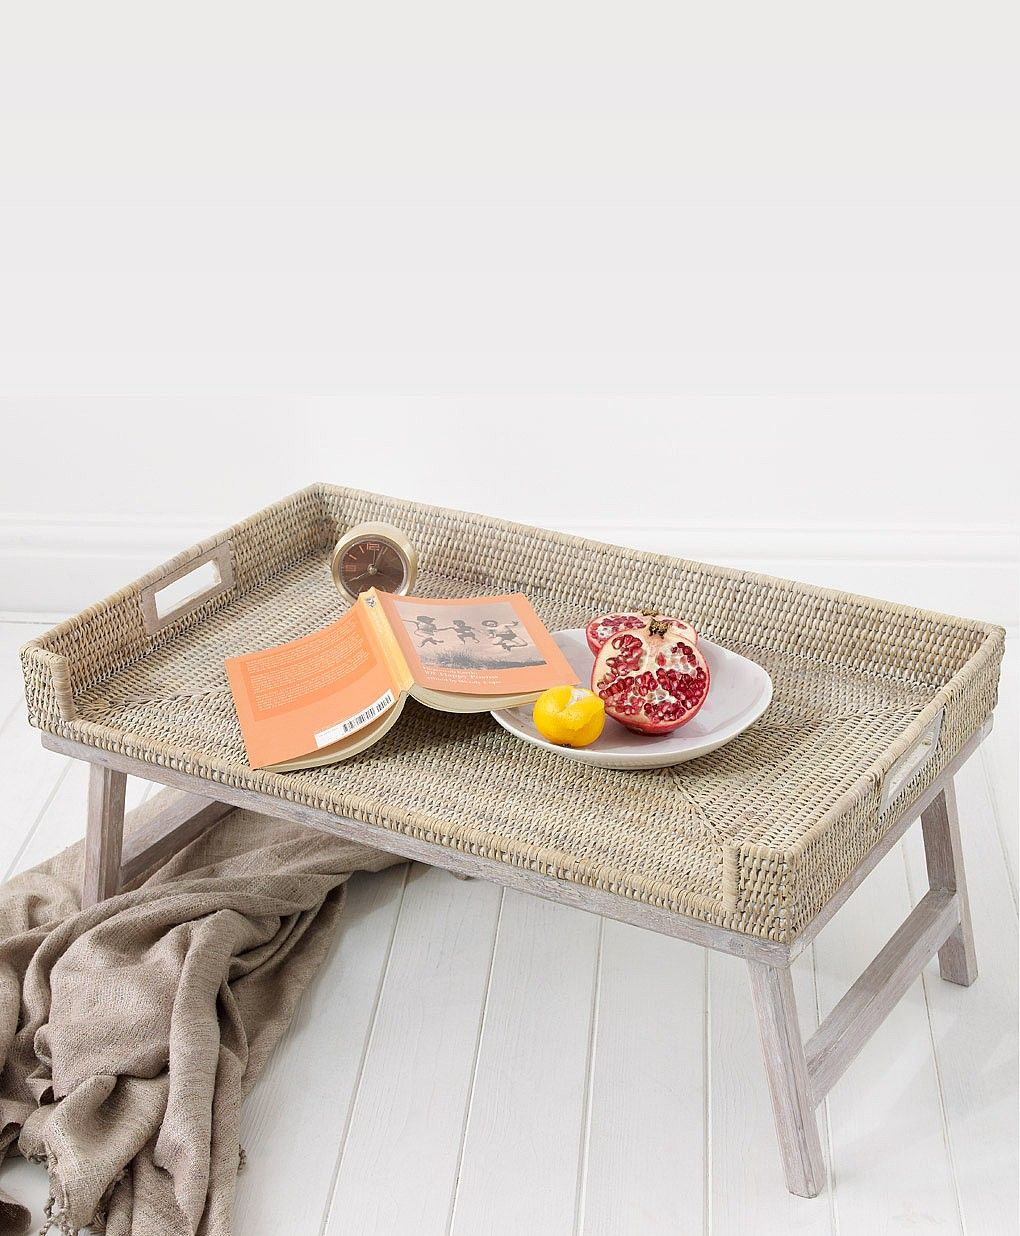 Breakfast Trays For Bed Simple Rattan Breakfast Tray  Breakfast Tray Rattan And Trays Design Ideas